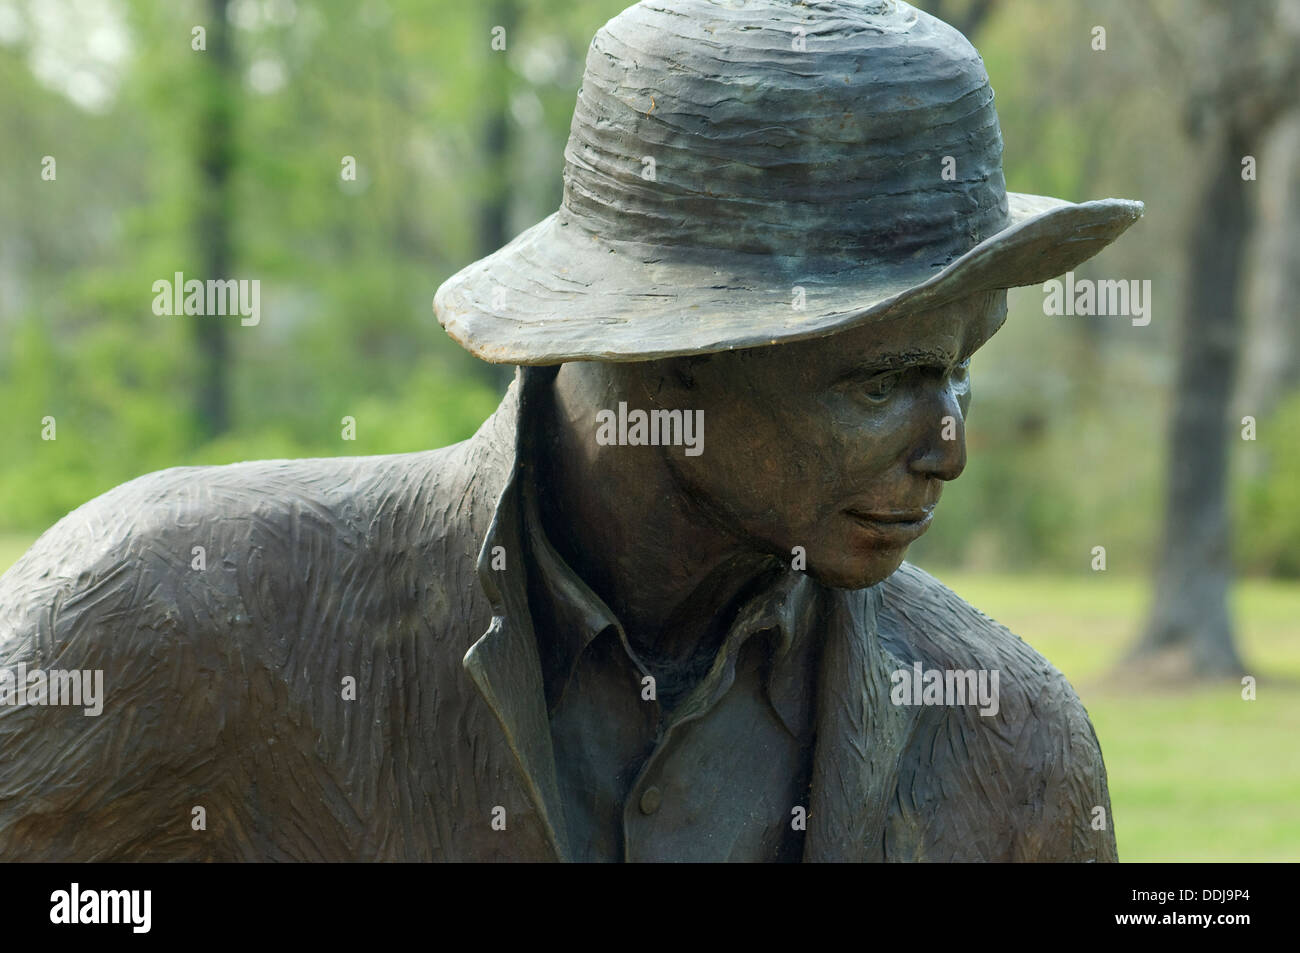 Statue of a freed slave at Union Army's Contraband Camp in Corinth MS, 1862-1864. Digital photograph - Stock Image